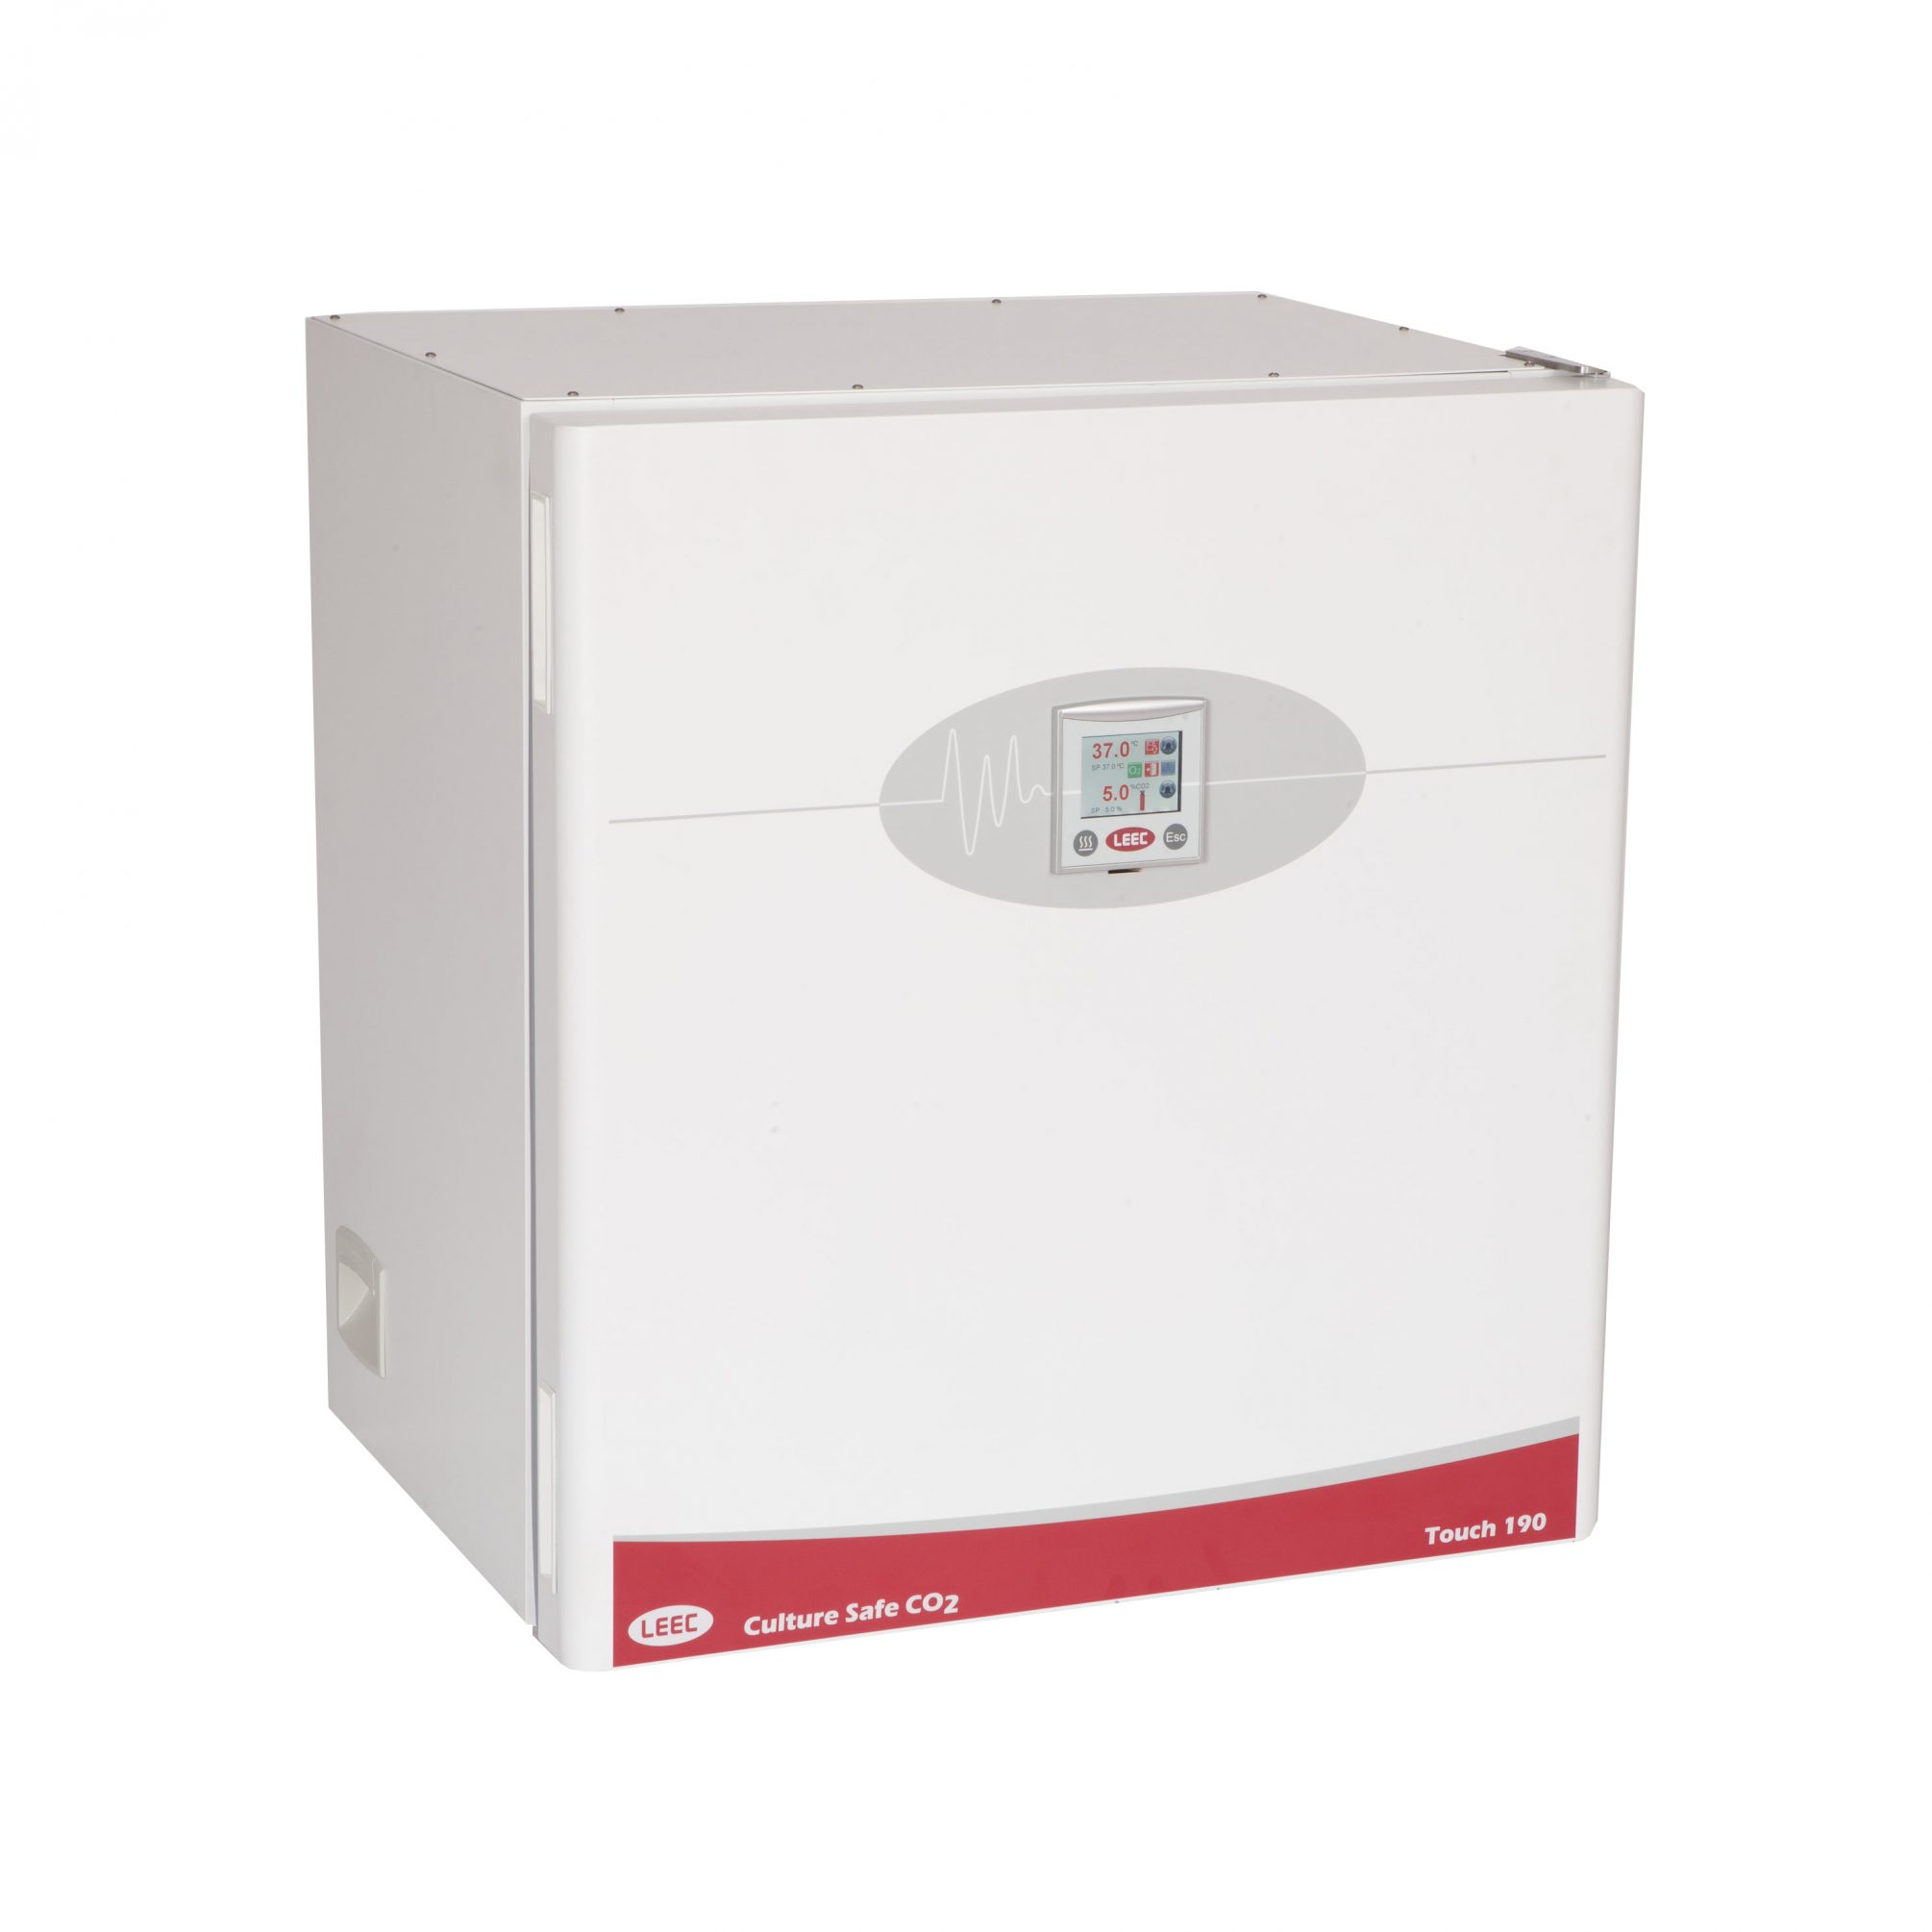 Touch Culture Safe CO2 Incubators, LEEC